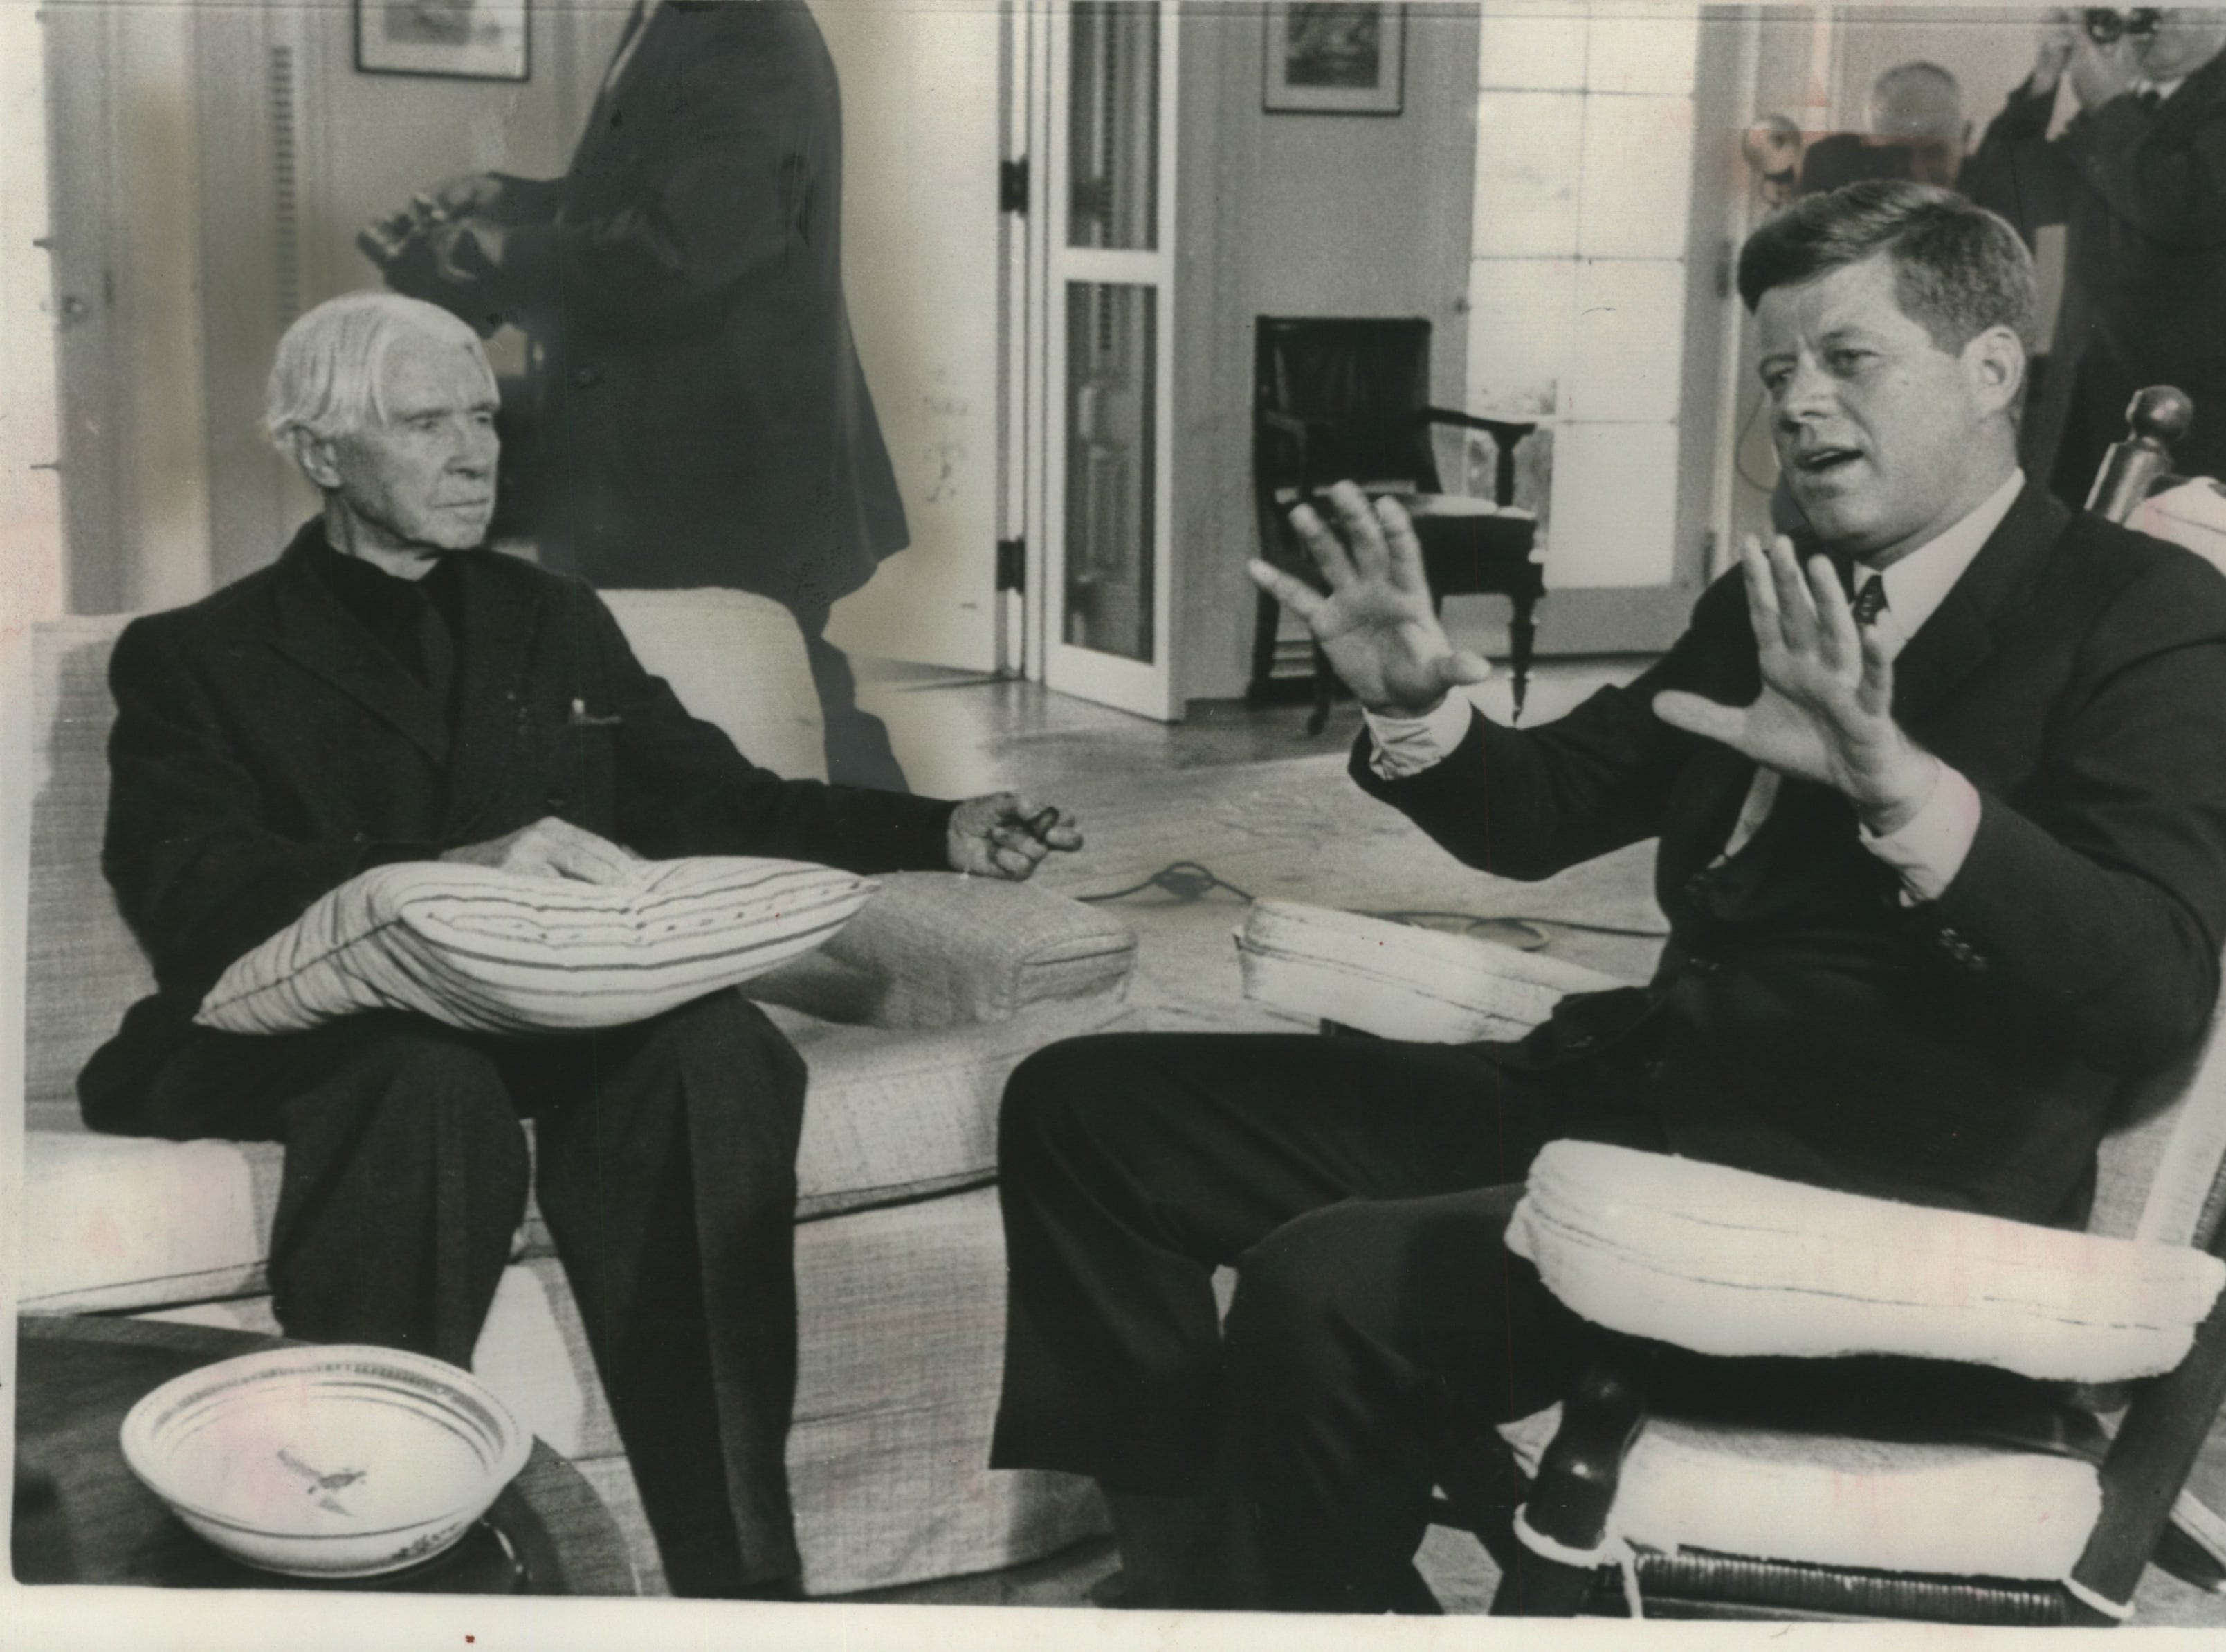 Poet Carl Sandburg held a pillow in his lap when he visited President Kennedy at the White House Wednesday. Sandburg was in Washington to speak at the opening of a Civil war centennial exhibit. President Kennedy And Others - A.